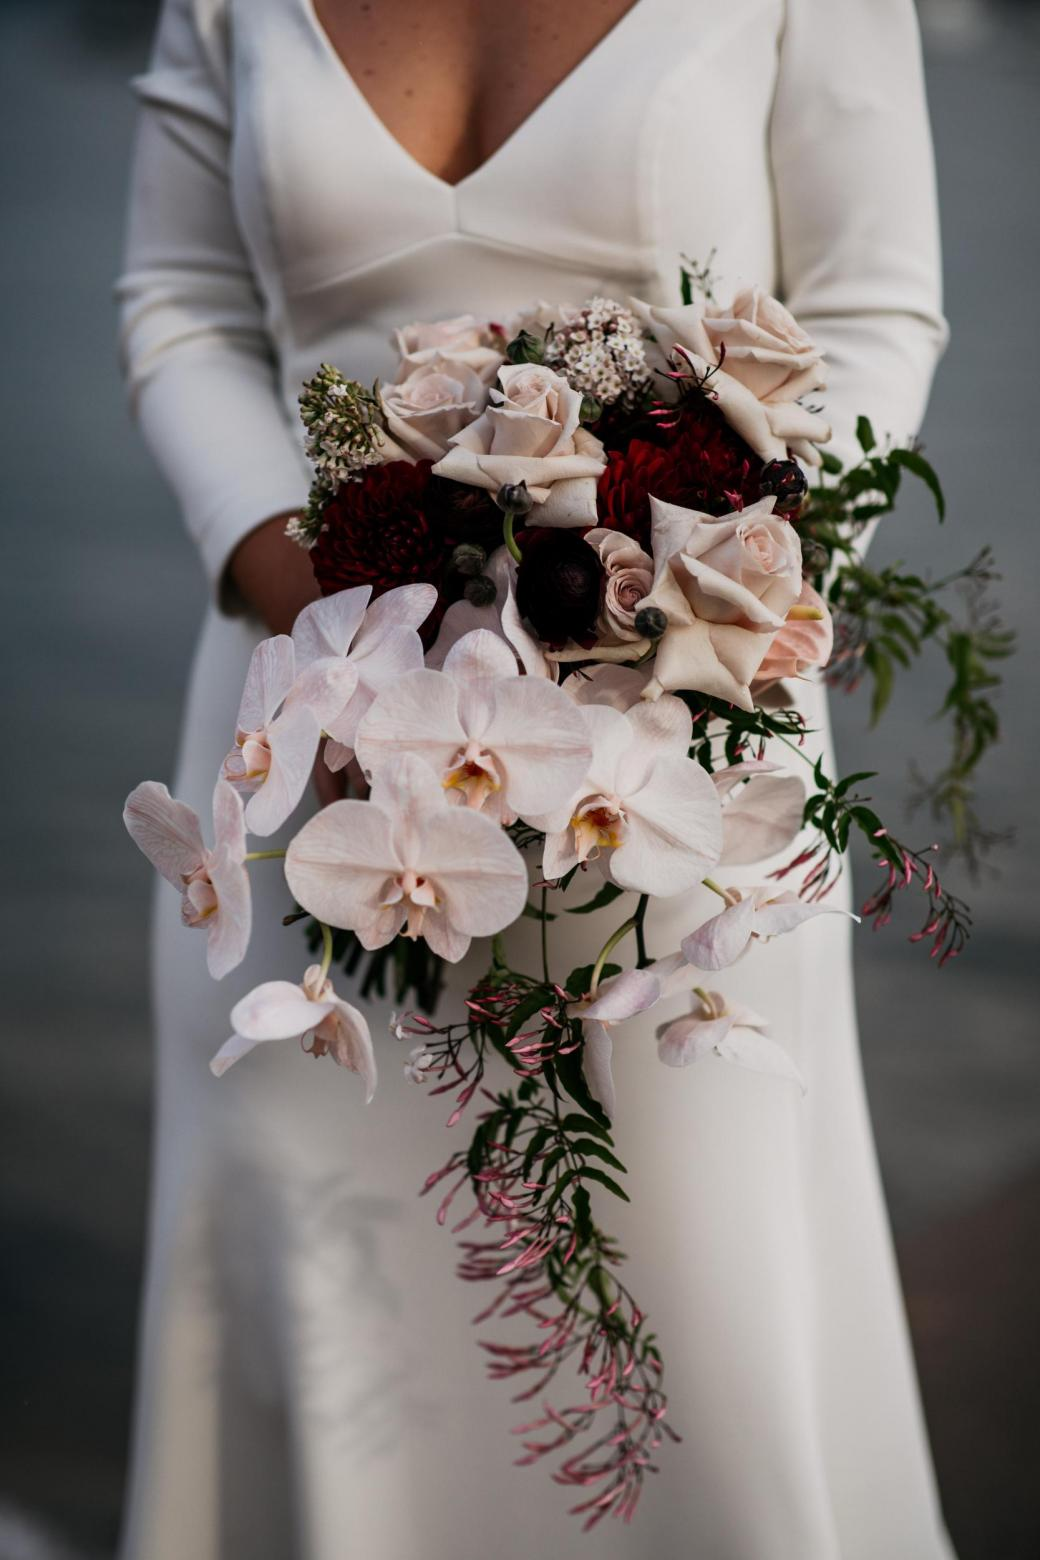 Bride Jordana holds her mixed bridal bouquet, featuring orchids and pink roses; whilst wearing the AUBREY wedding dress by Karen Willis Holmes.